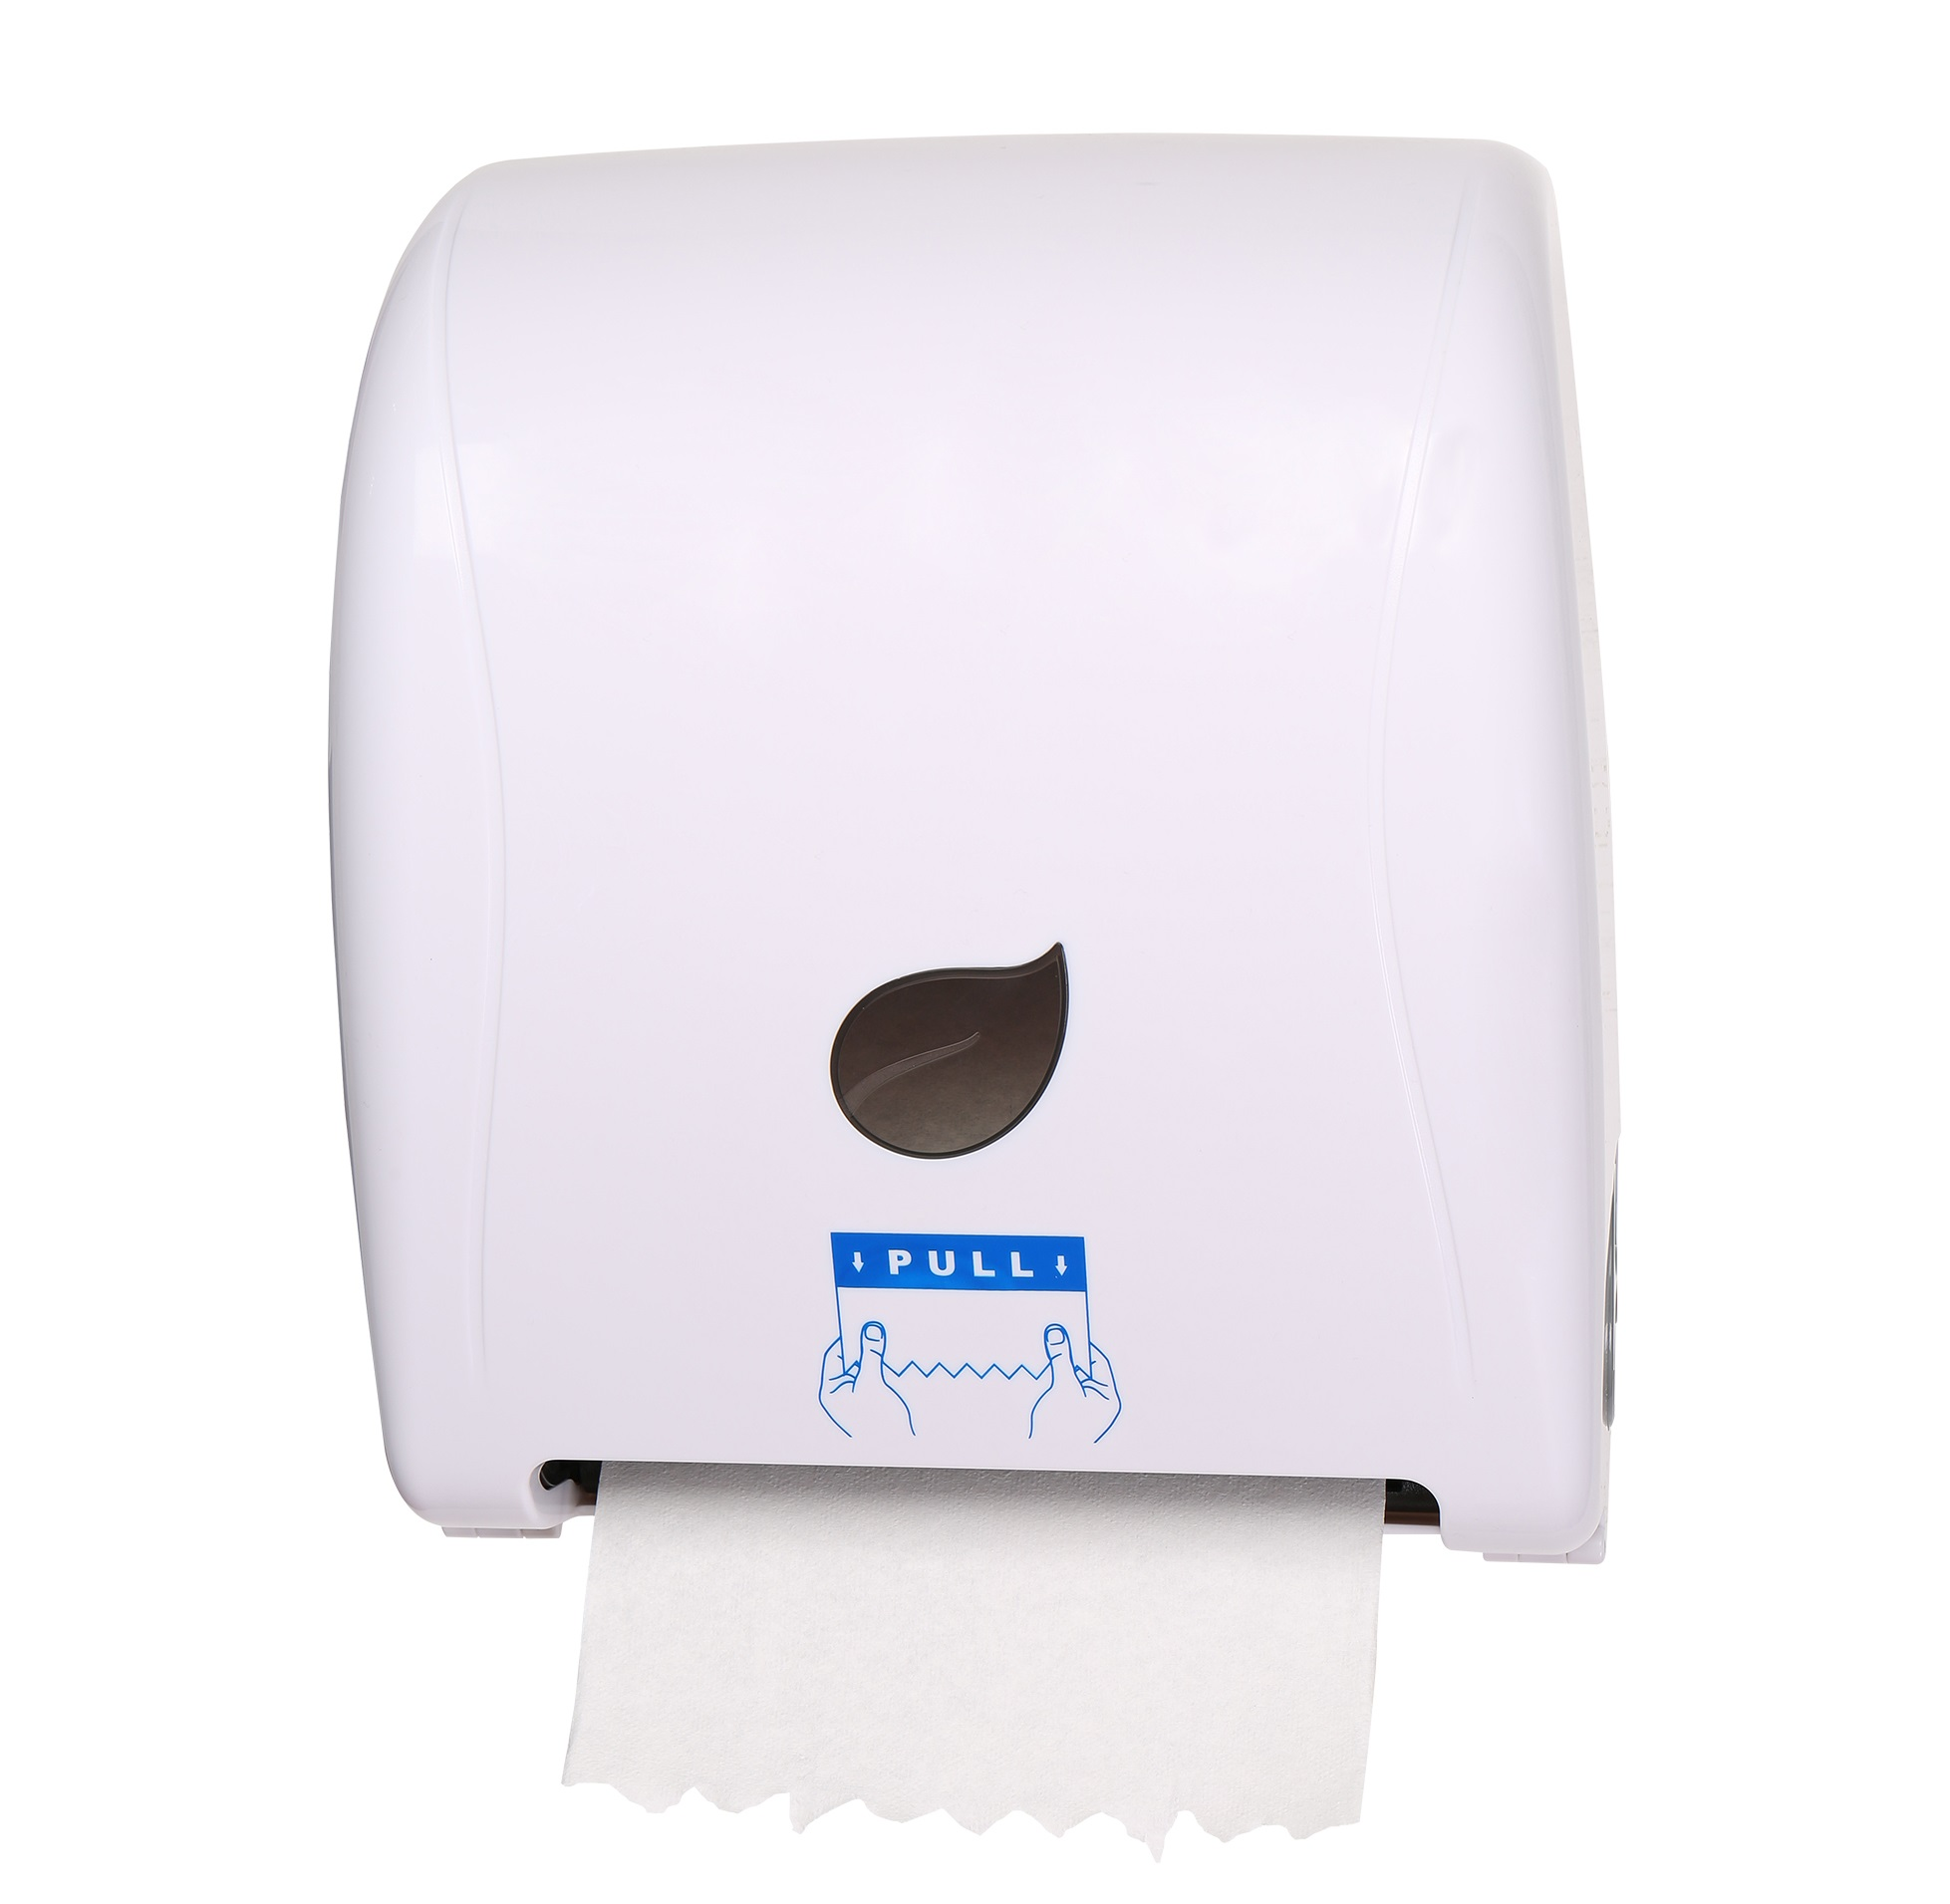 Plastic Bathroom Auto Cut Toilet Paper Towel Dispenser